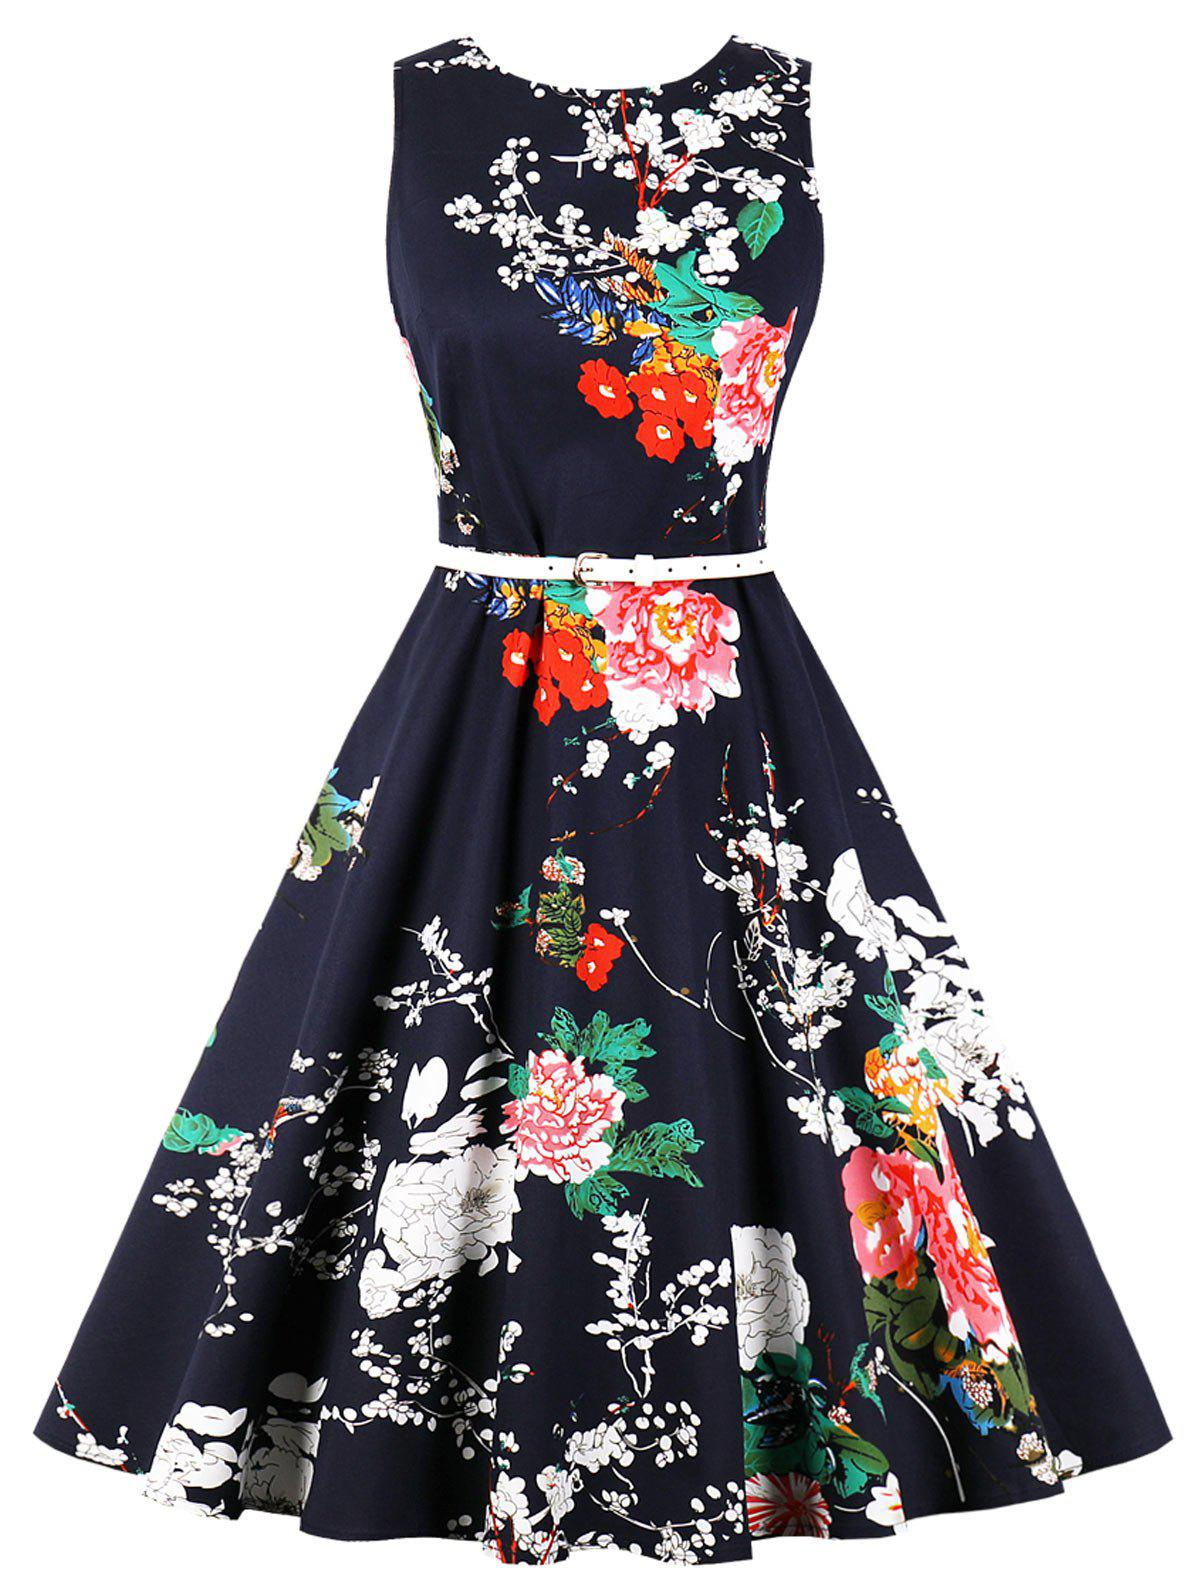 Discount Vintage Floral Fit and Flare Dress